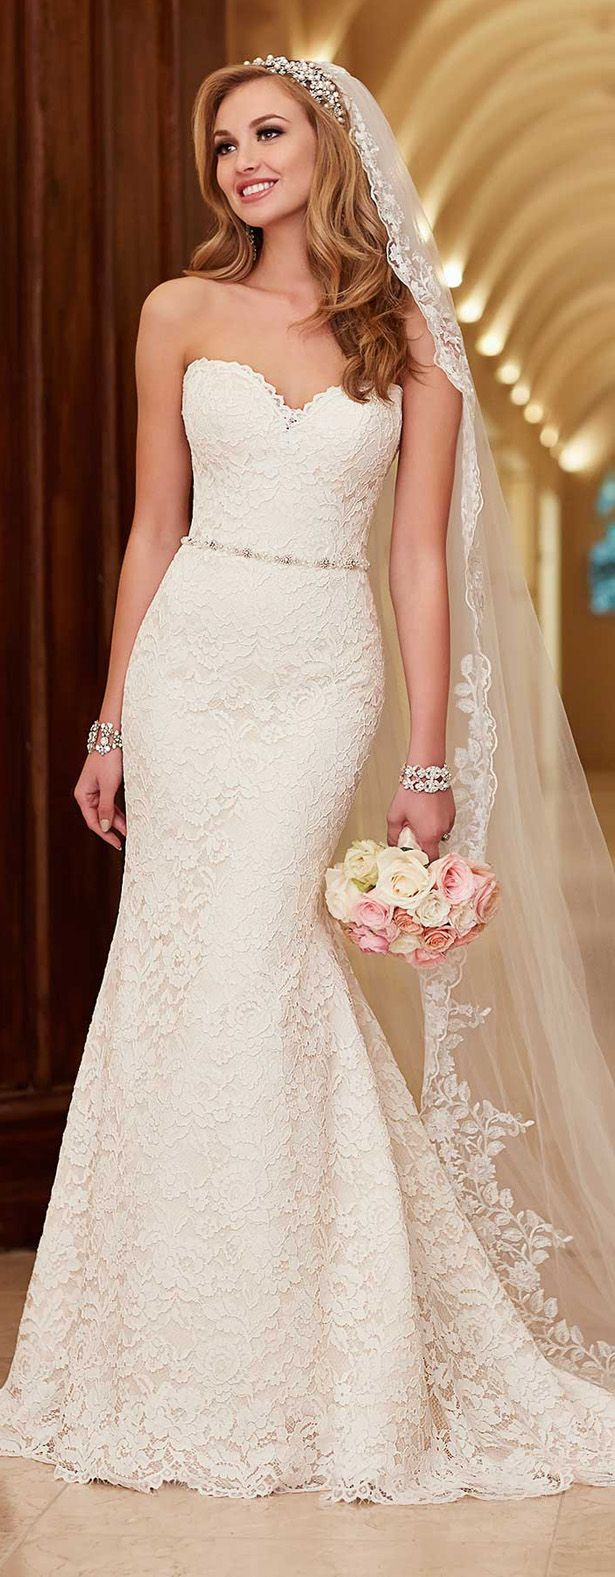 The BEST #WeddingDresses of 2015 -  Stella York Spring 2016